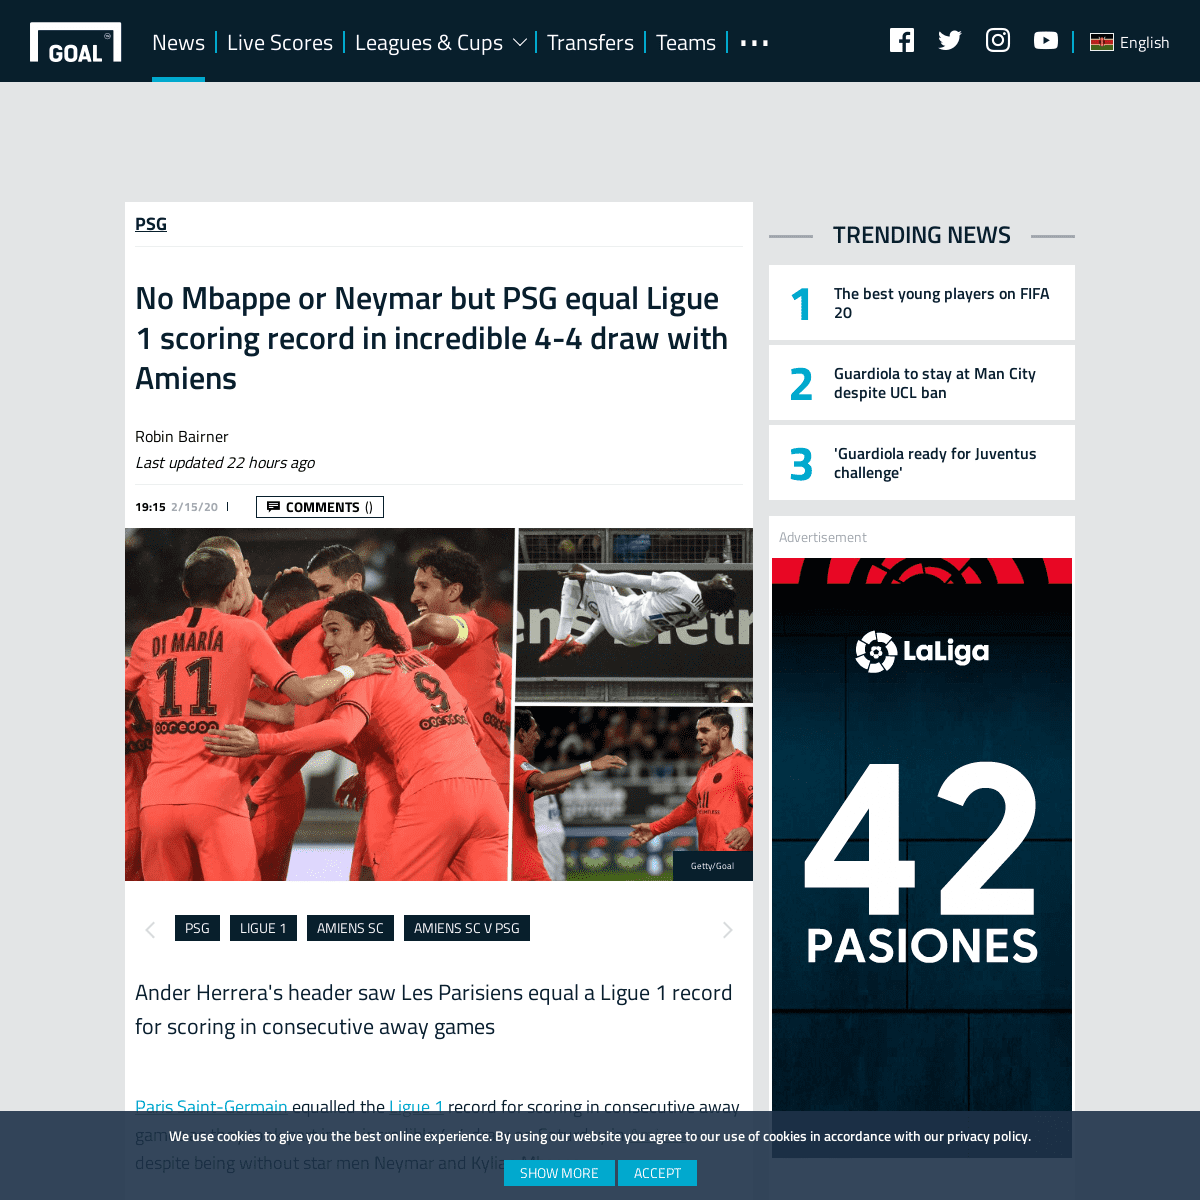 No Mbappe or Neymar but PSG equal Ligue 1 scoring record in incredible 4-4 draw with Amiens - Goal.com